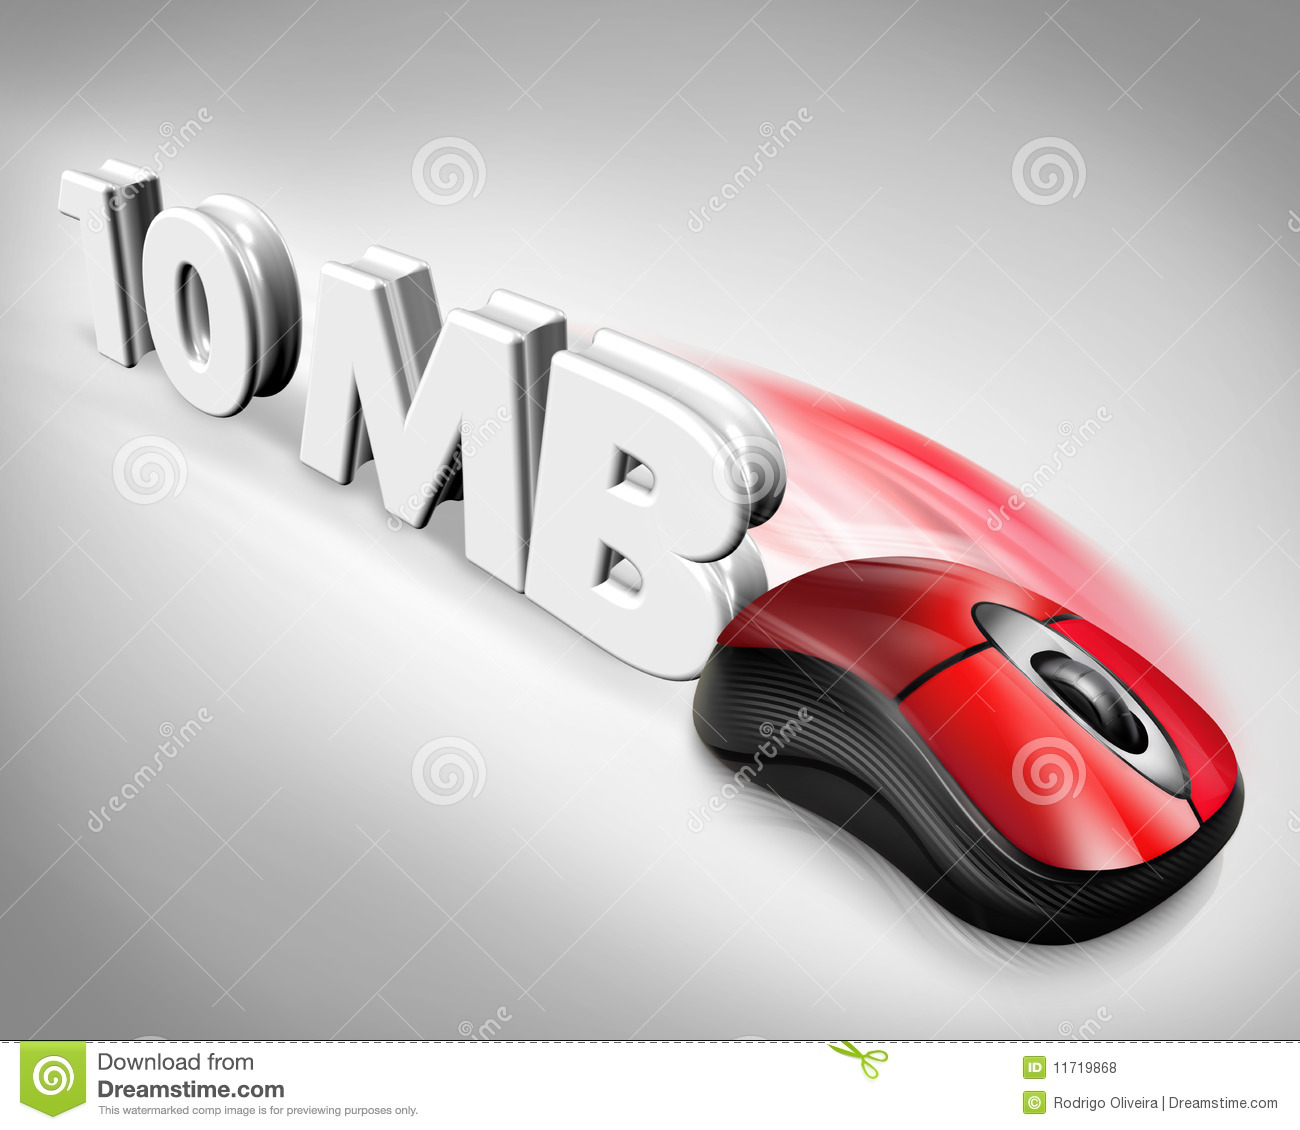 10Mb 10mb speed mouse stock illustration. illustration of limit